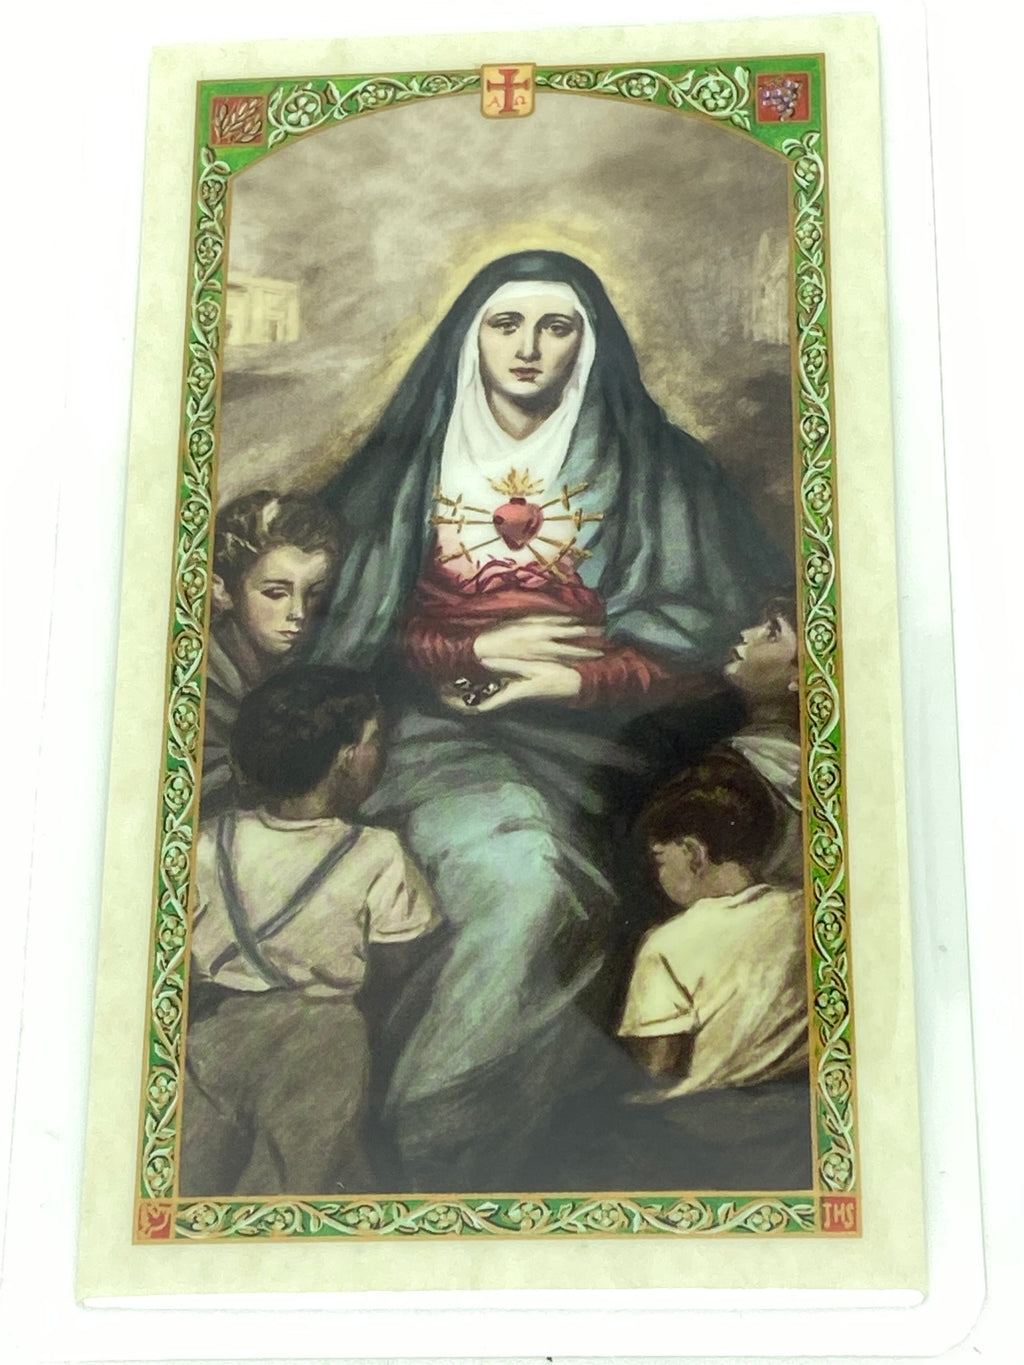 Our Lady of the Seven Sorrows Laminated Holy Card (Plastic Covered) - Unique Catholic Gifts